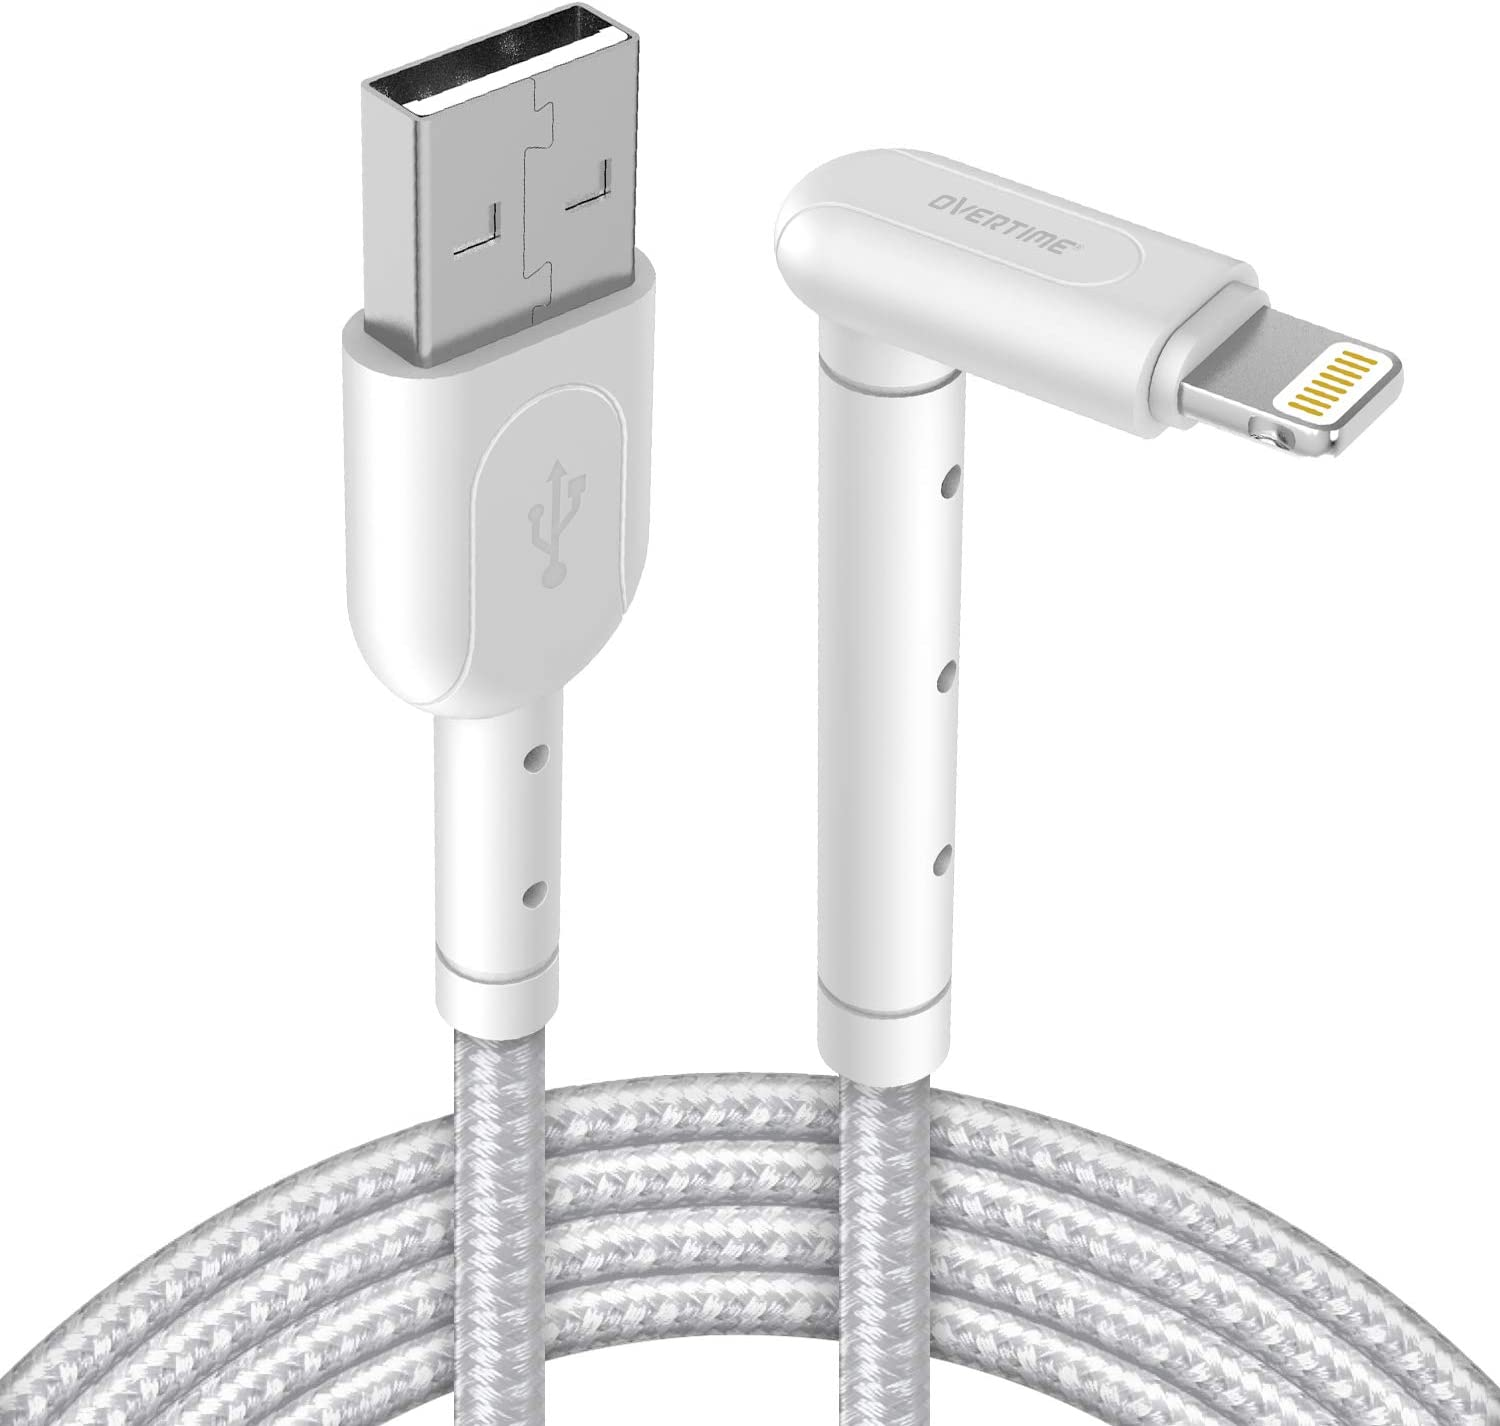 iPad//iPad Air 2//Mini 4//3//2 iPhone Charger Cable White Overtime Apple MFi Certified Lightning Cable 6ft USB Cord for iPhone 11//11 Pro//11 Max//X//XS Max//XR//8 Plus//7//6//SE 2-Pack